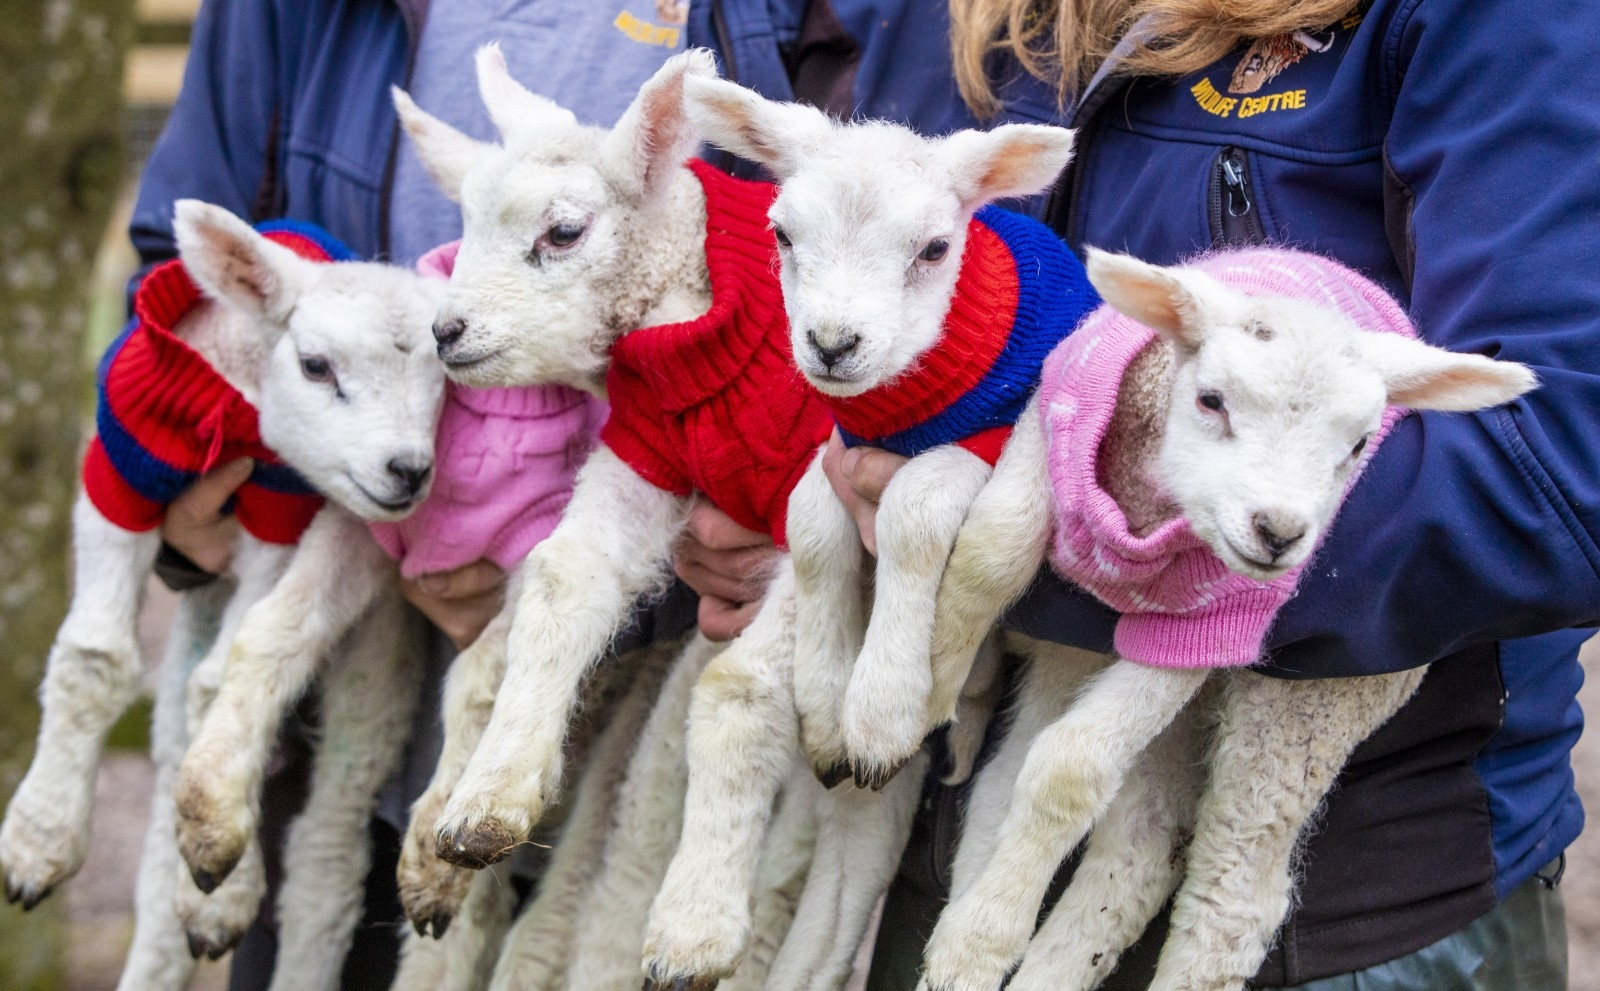 Five Newborn Lambs Dress In Woolly Jumpers To Keep Warm